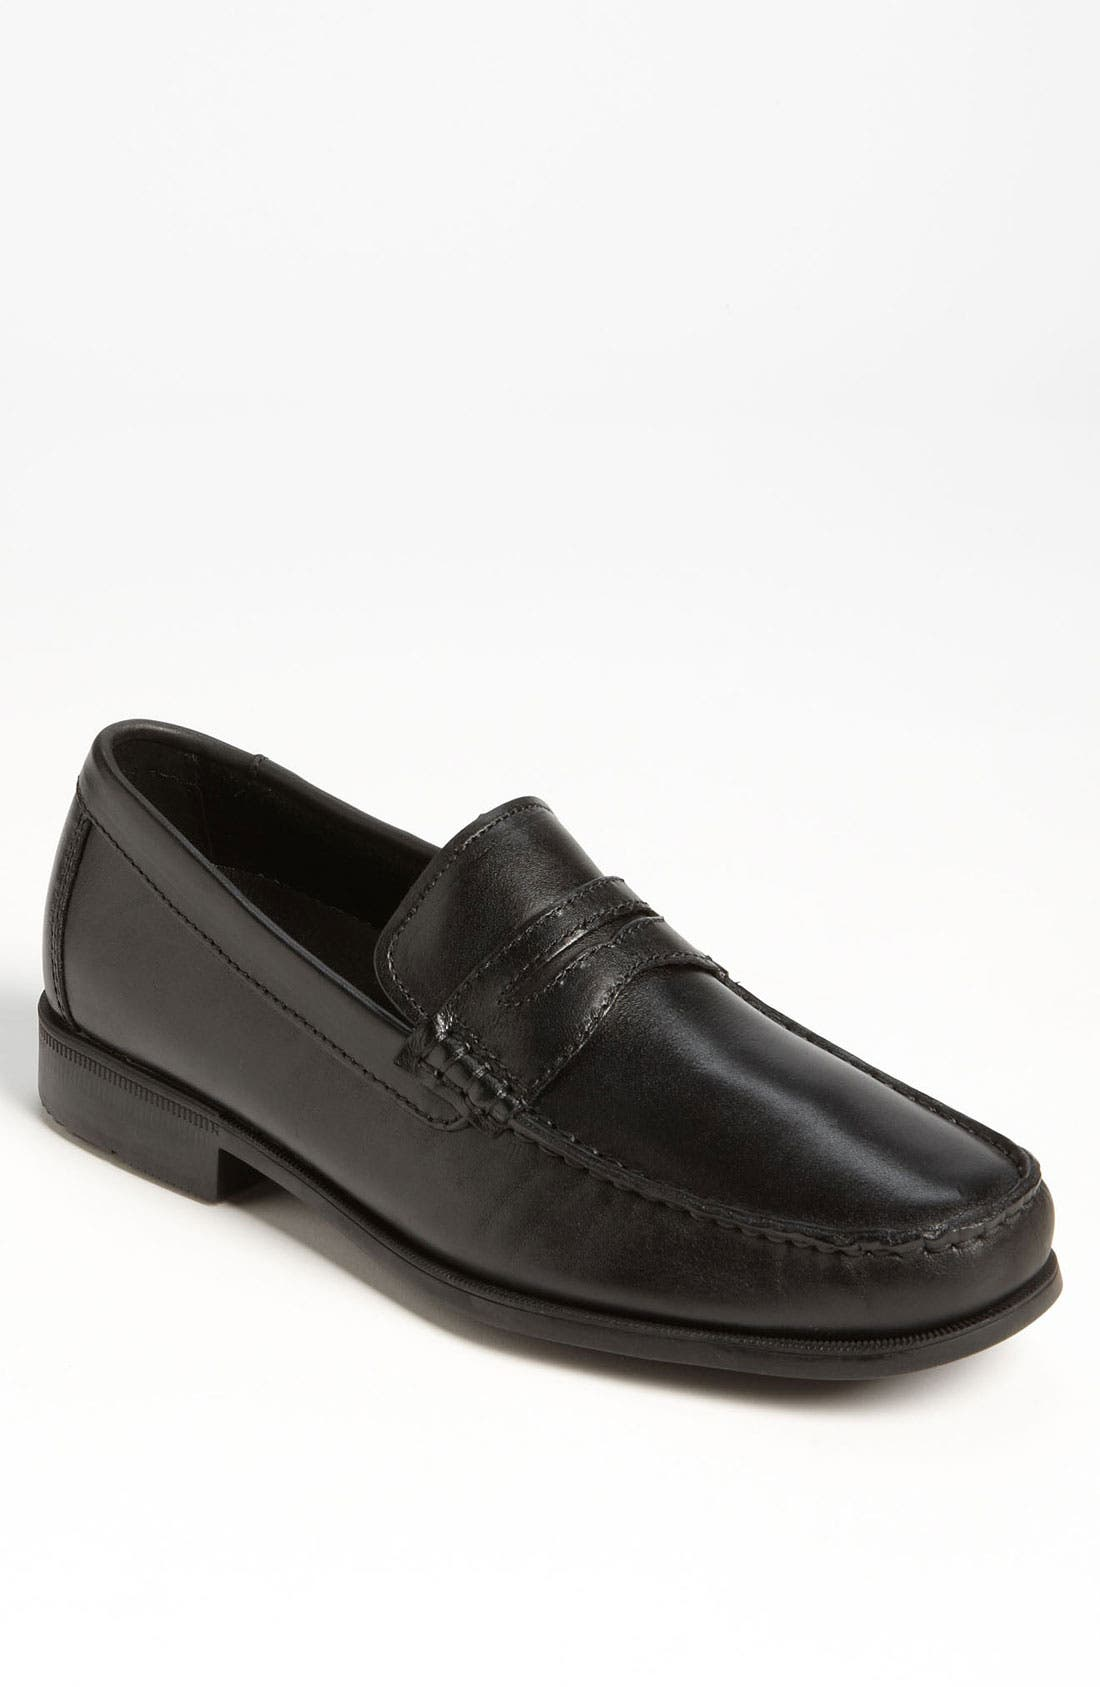 Alternate Image 1 Selected - Sebago 'Back Bay Classic' Loafer (Online Only)